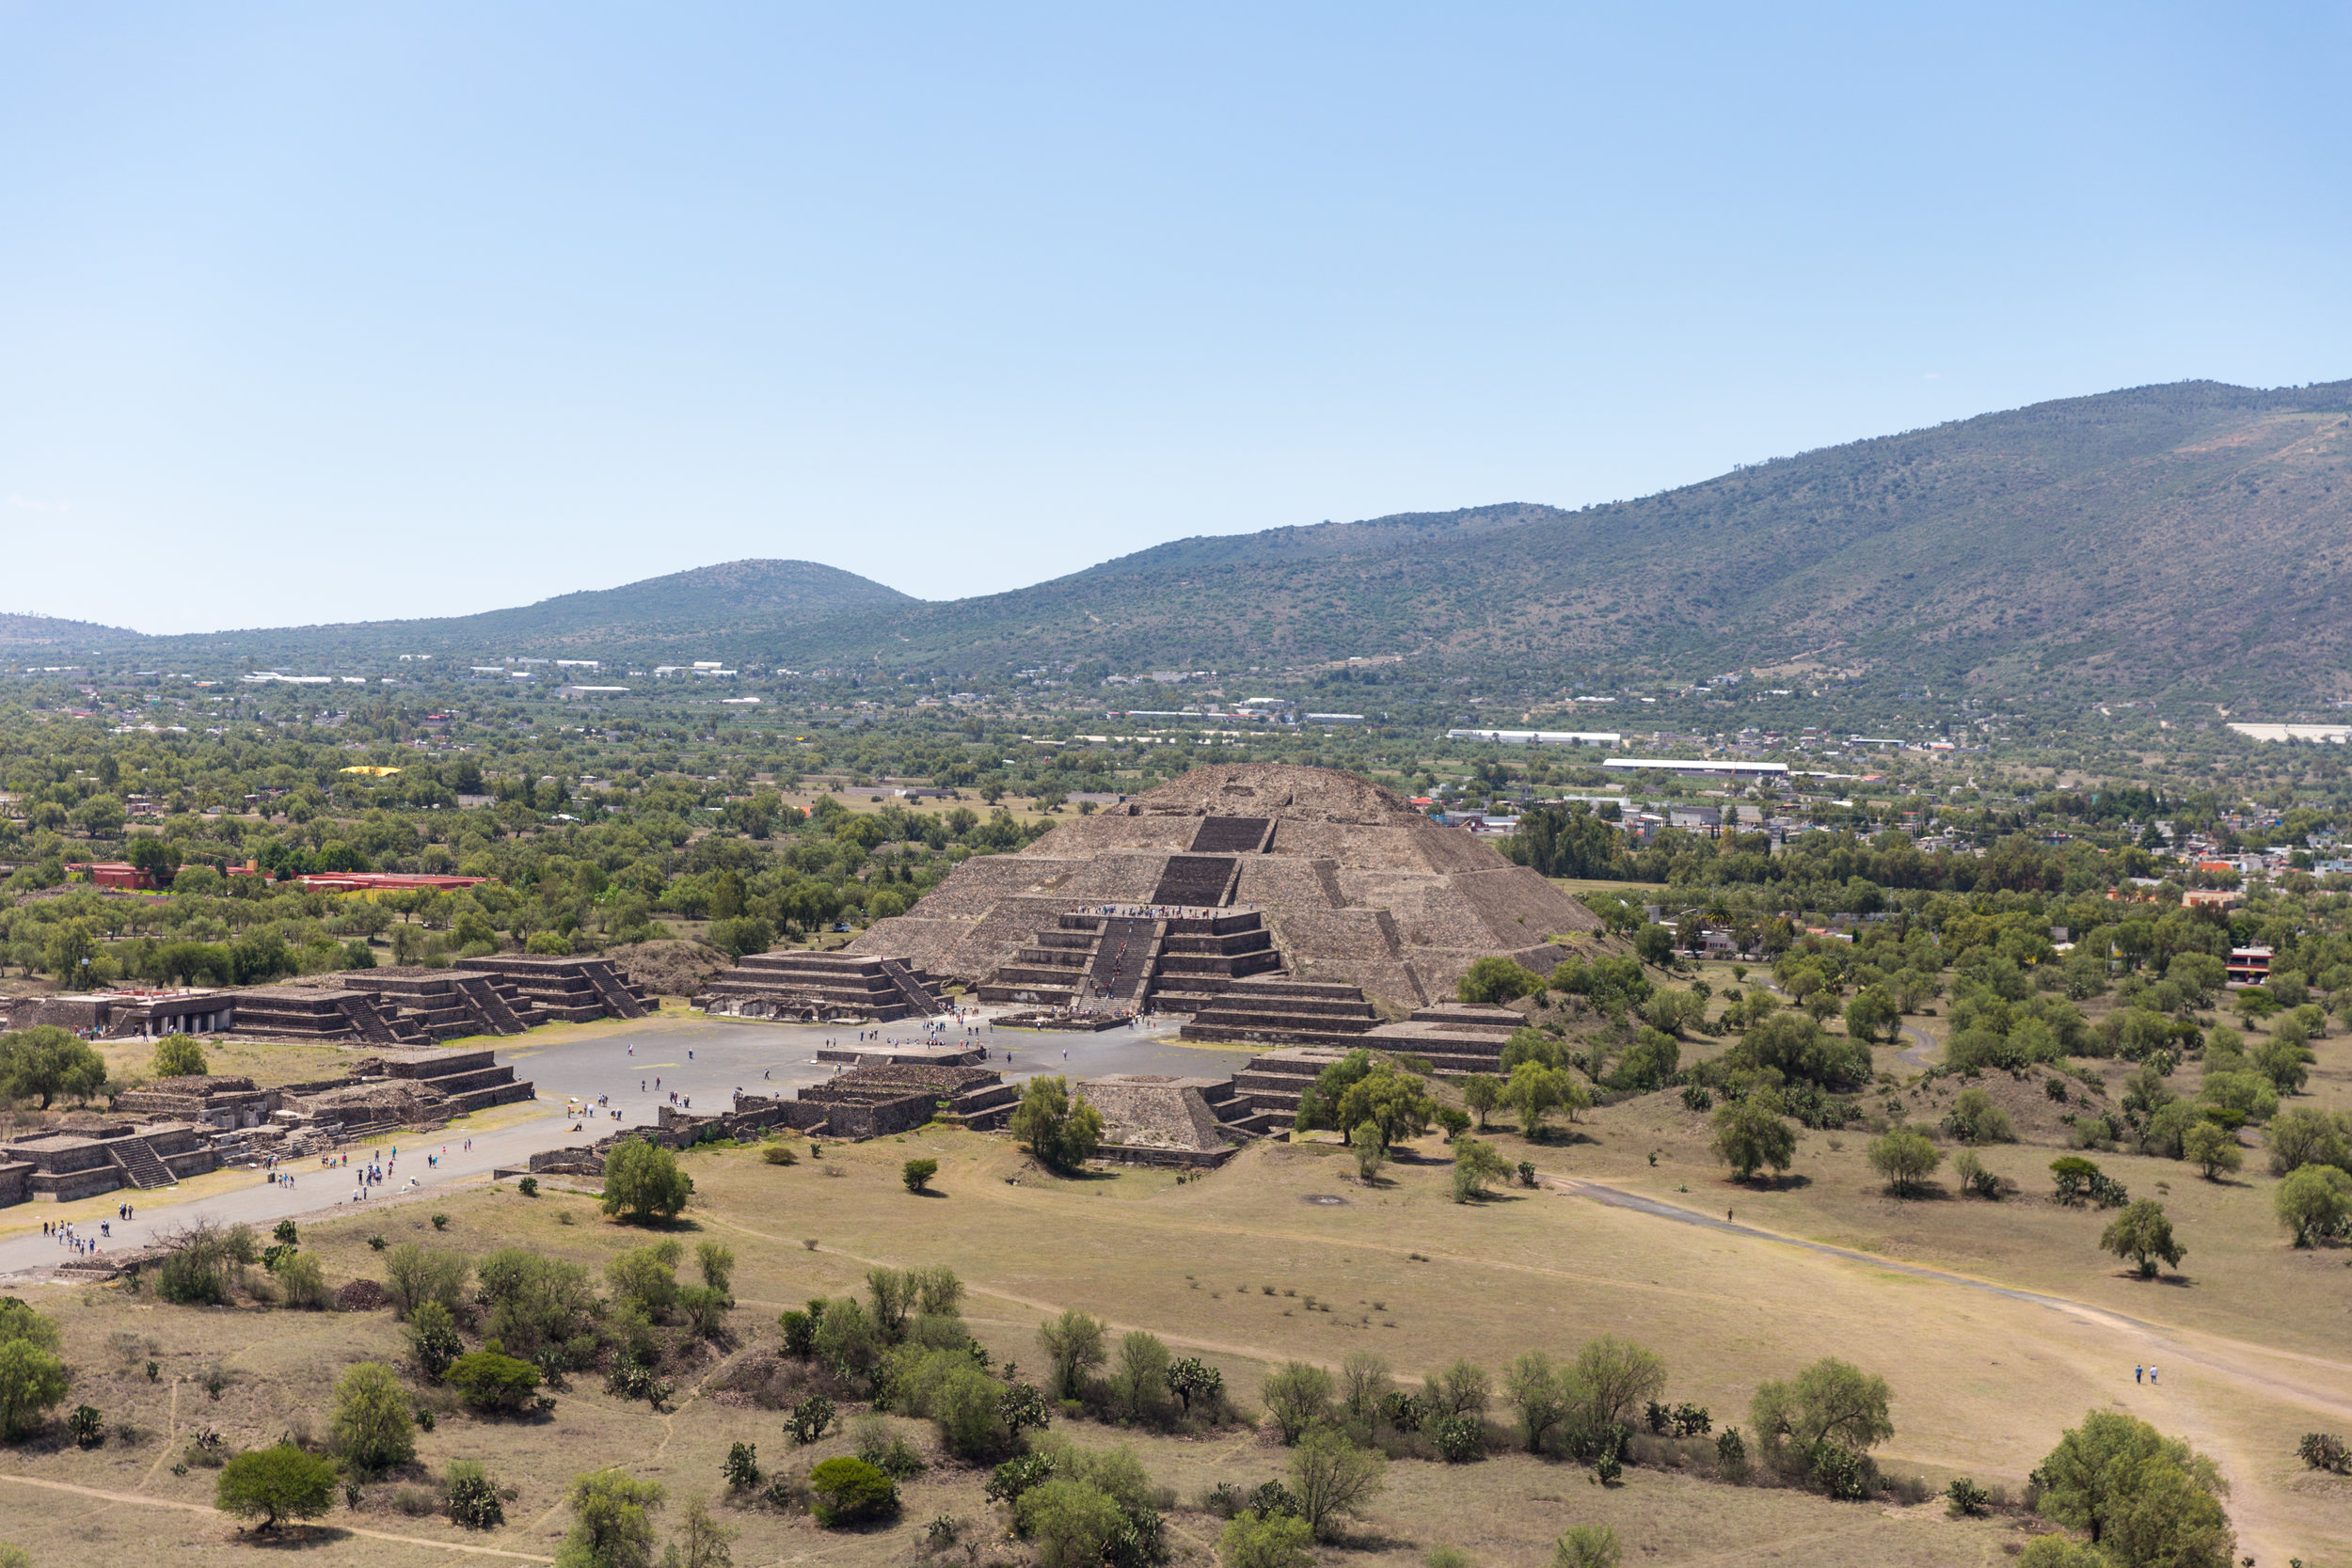 Mexico City Teotihuacan-8.jpg